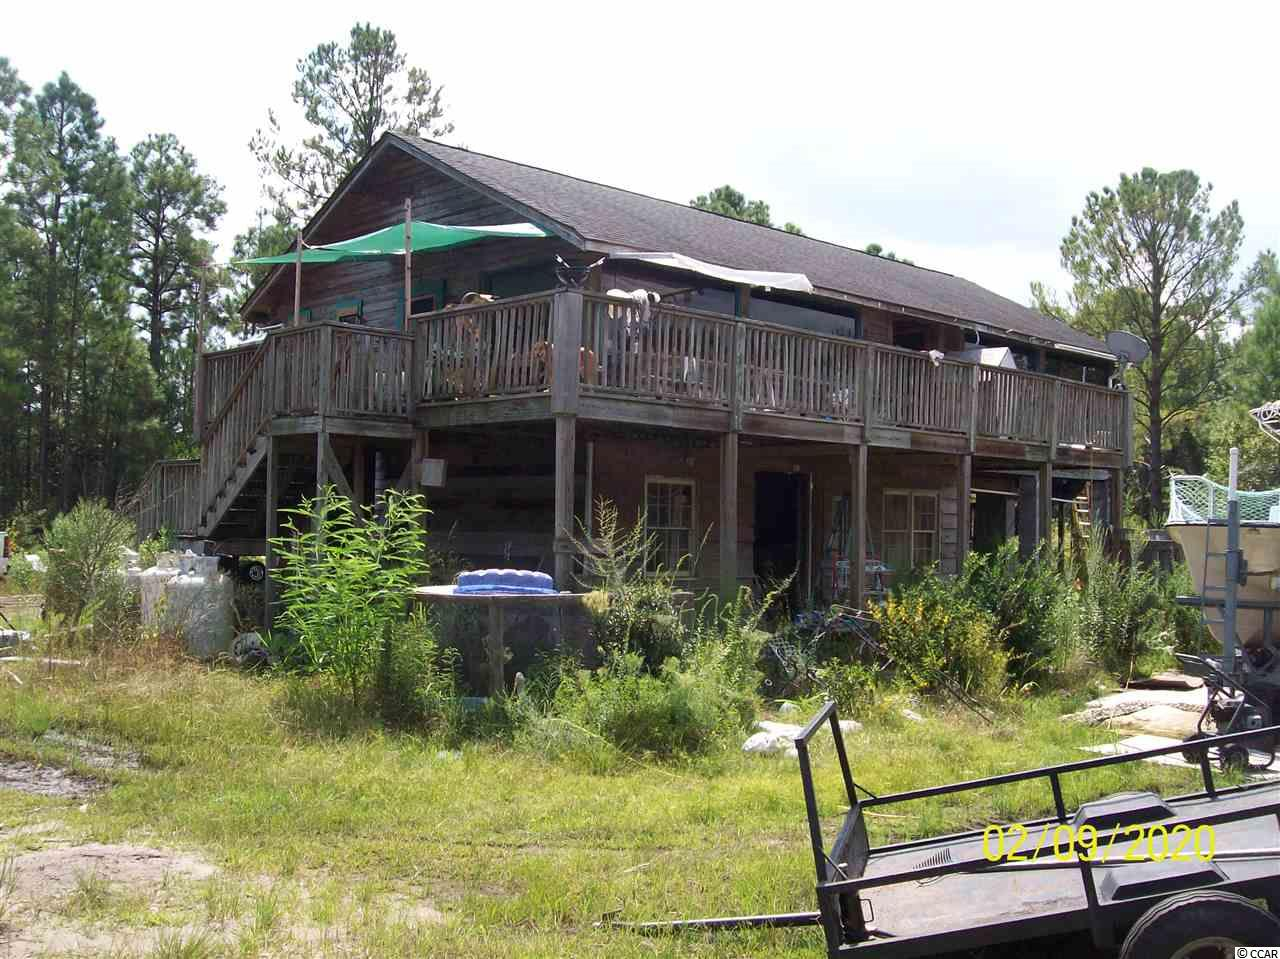 NEAT, LITTLE 2-STY. 2BR HOUSE WITH EXCELLENT LAKE VIEW, VERY PRIVATE SECLUDED AREA, 9.7 ACRE TRACT, GREAT PRICE!!!!!